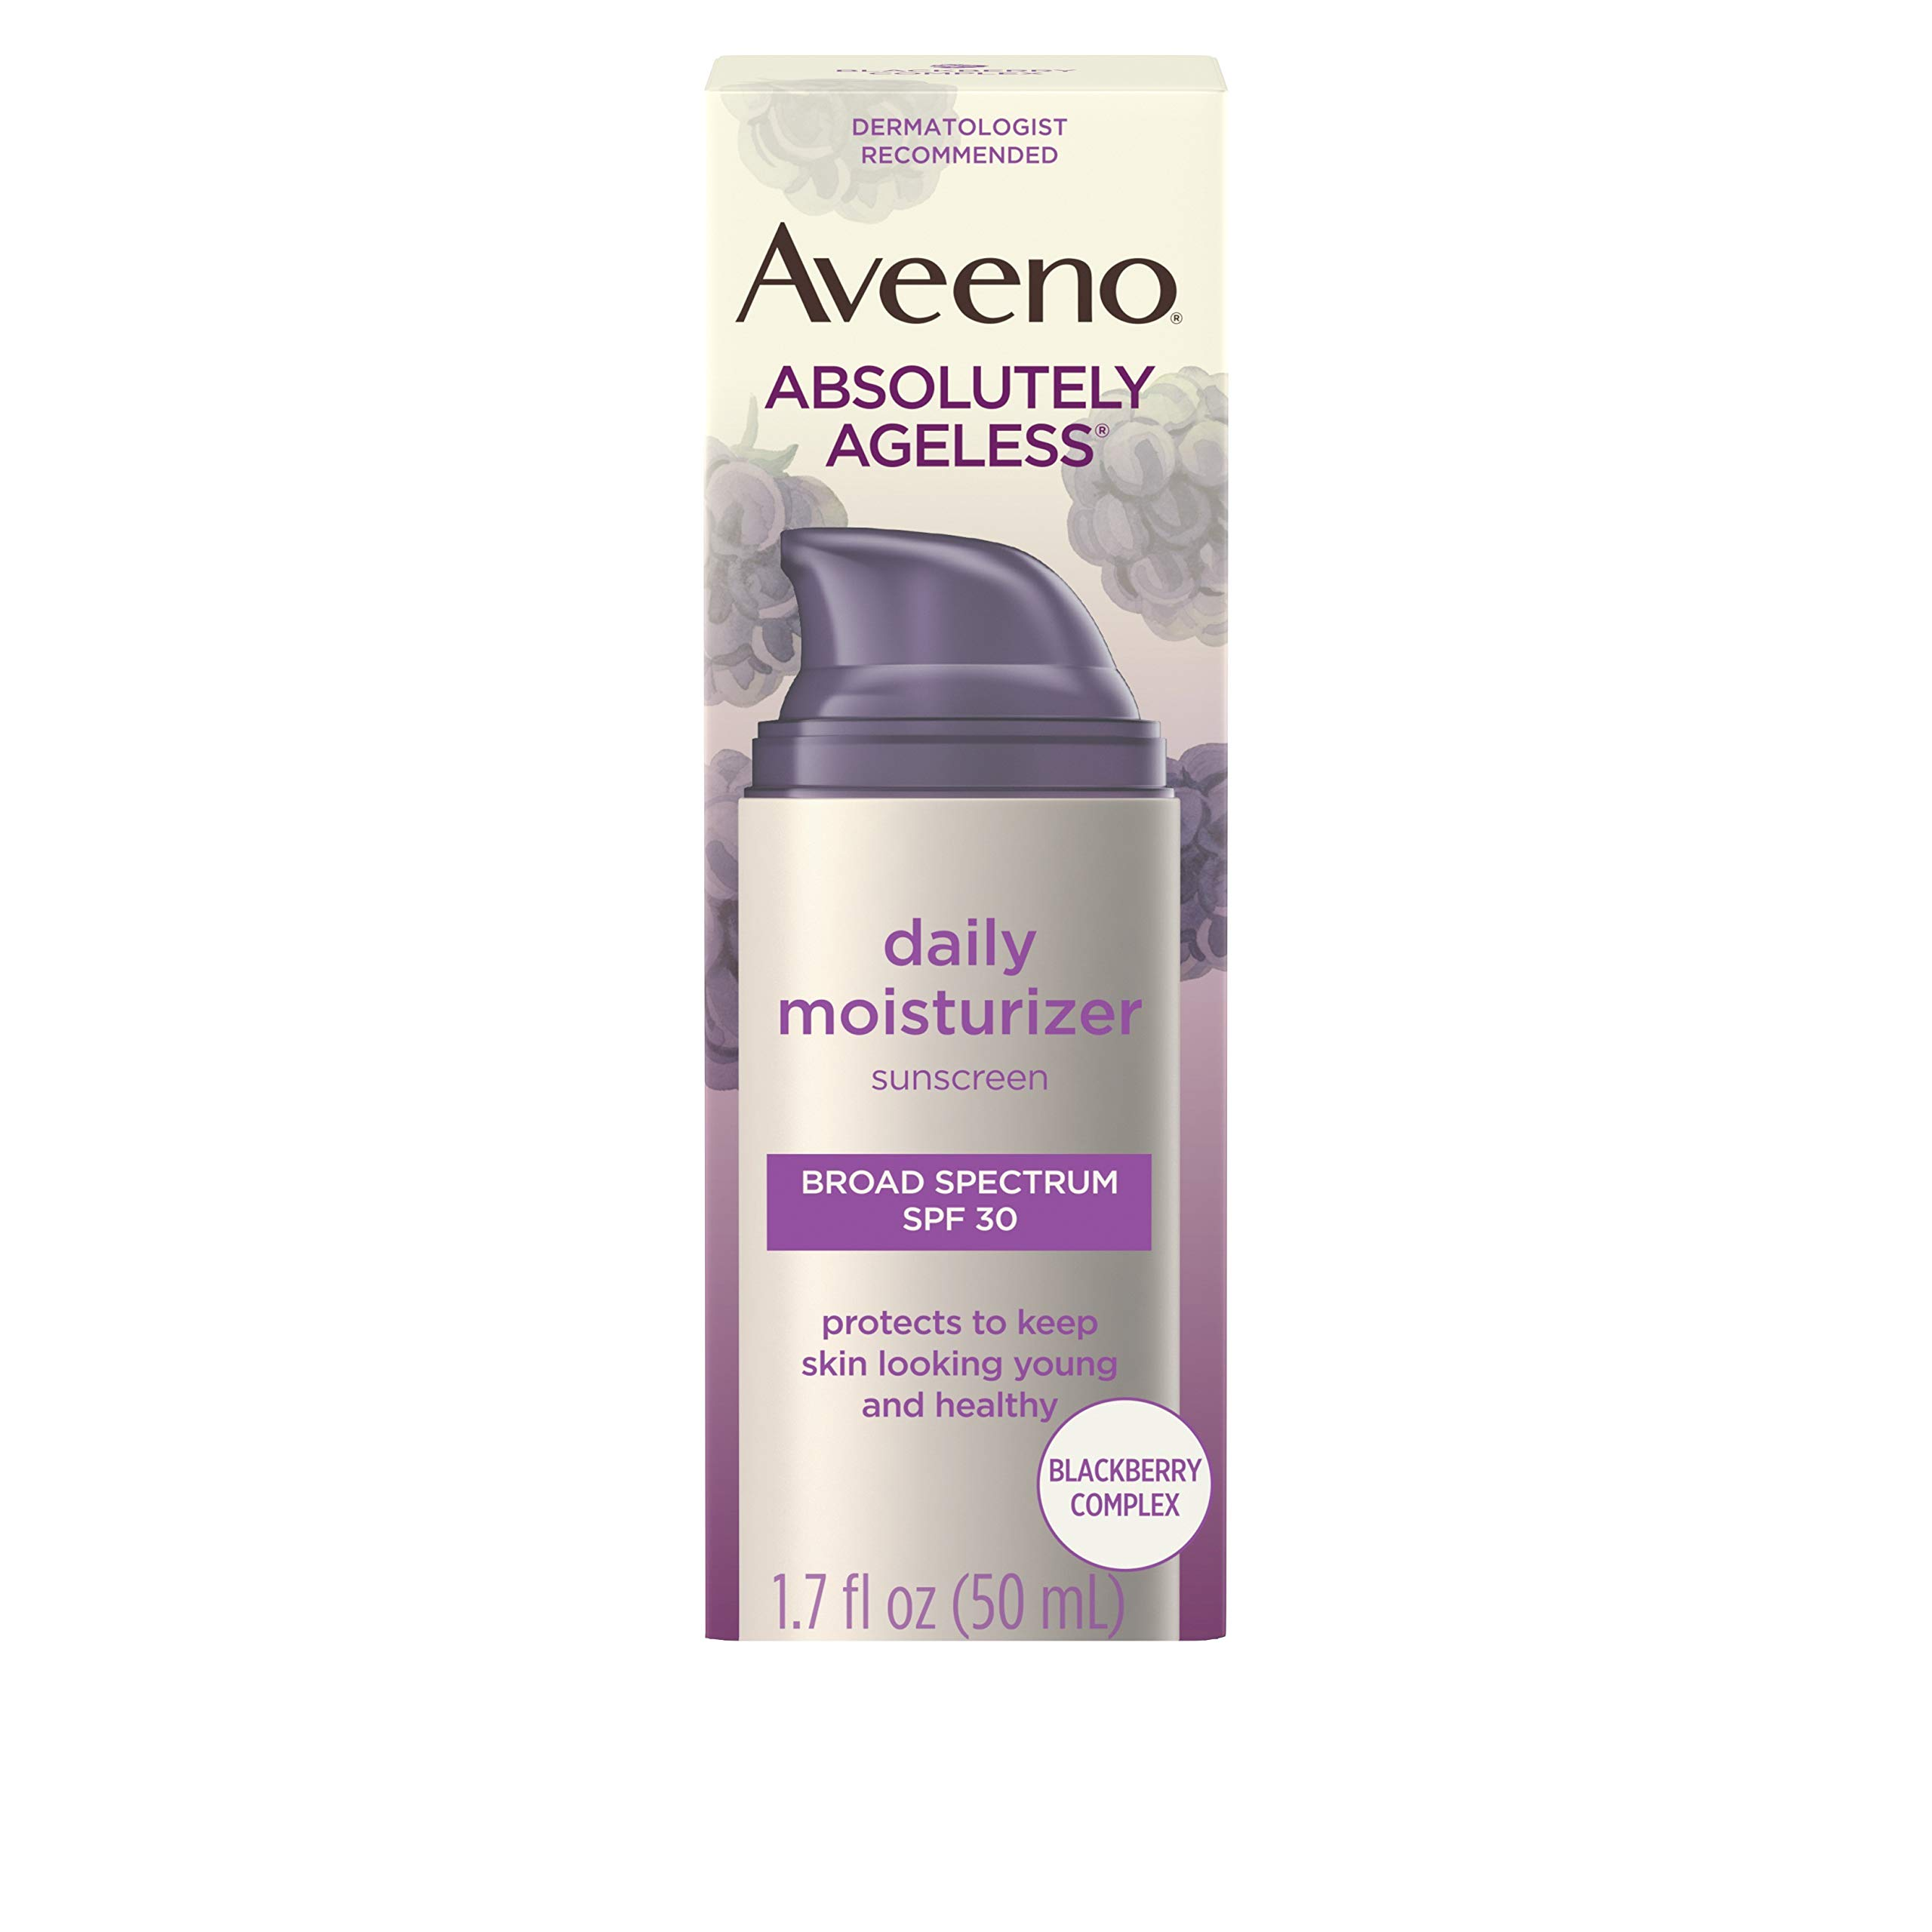 Aveeno Absolutely Ageless Daily Facial Moisturizer with Broad Spectrum SPF 30 Sunscreen, Antioxidant-Rich Blackberry Complex, Vitamins C & E, Hypoallergenic, Non-Comedogenic & Oil-Free, 1.7 fl. oz by Aveeno